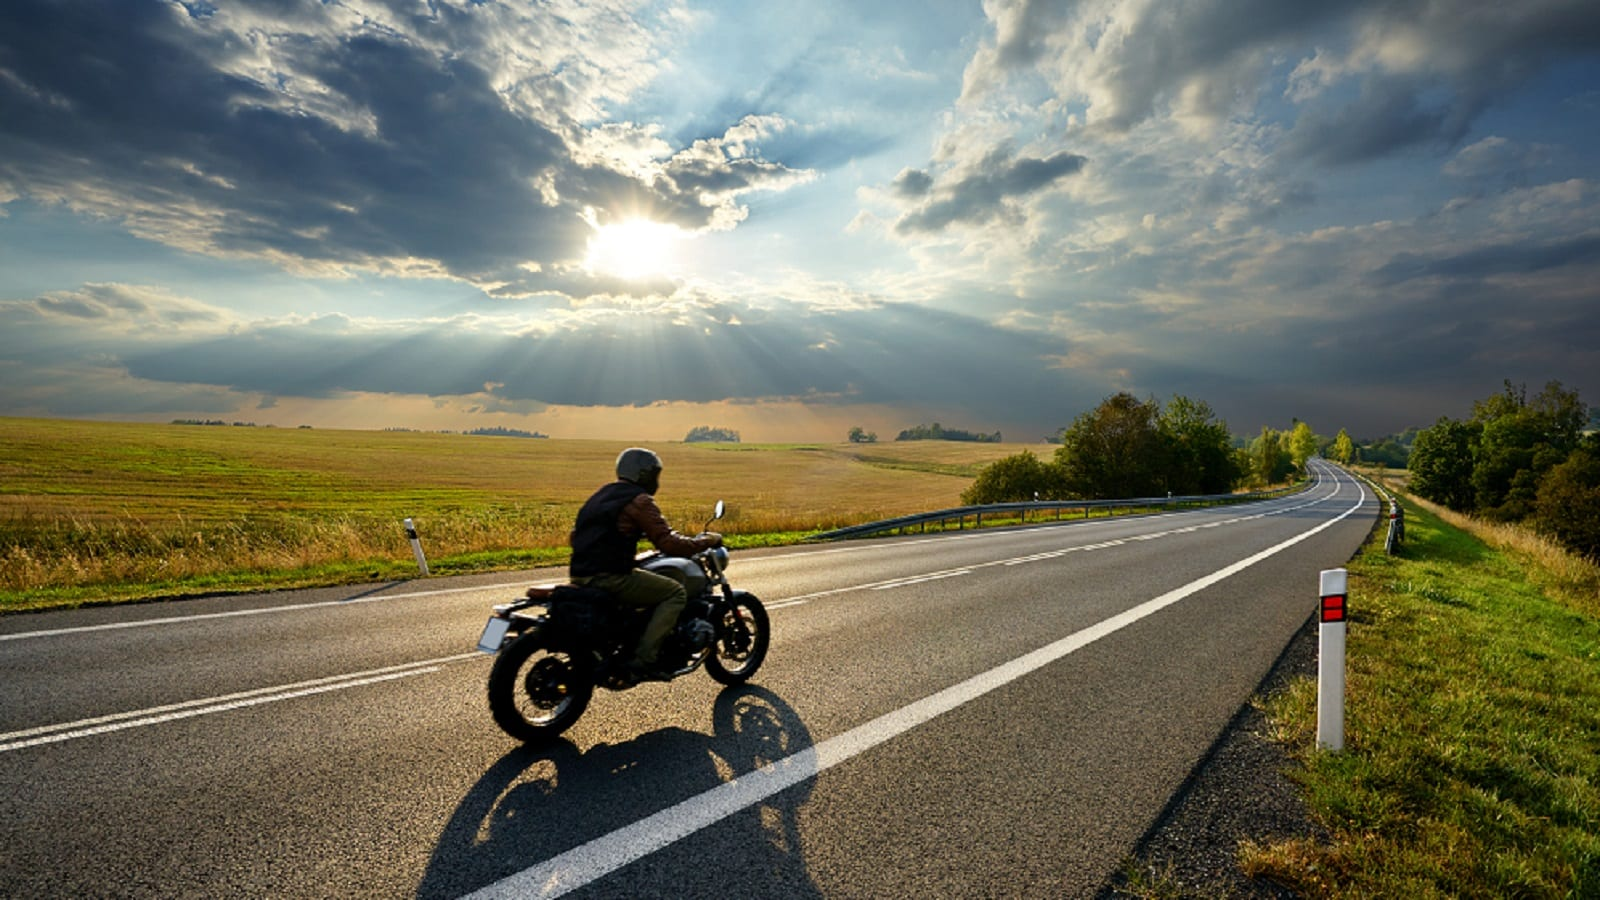 Man Riding Motorcycle In Rural Area Stock Photo